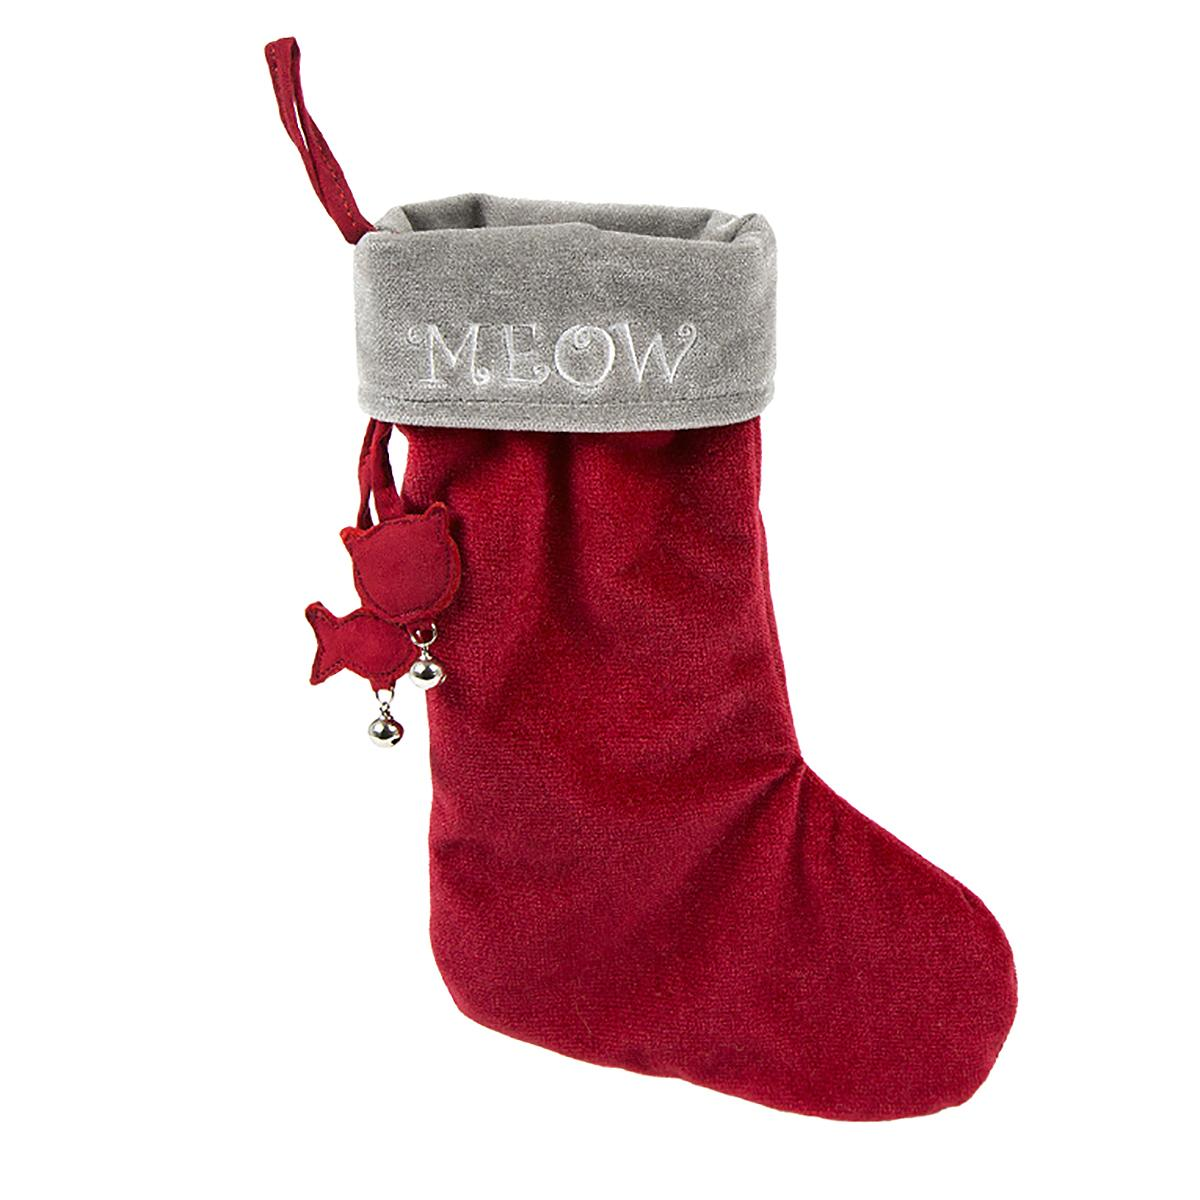 HuggleHounds Holiday Cat Stocking - Meow on Gray Cuff